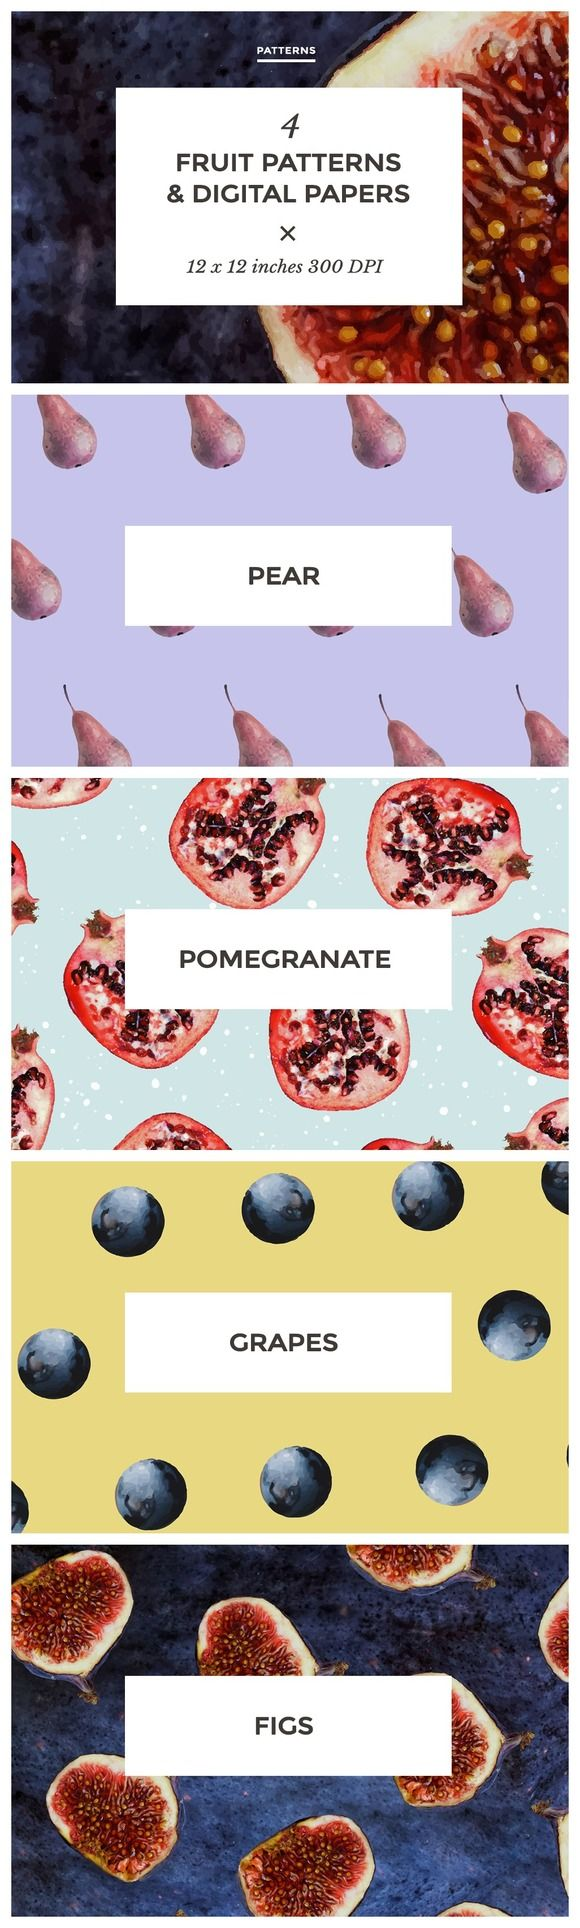 Fruit Patterns & Digital Papers by Design Co. on Creative Market